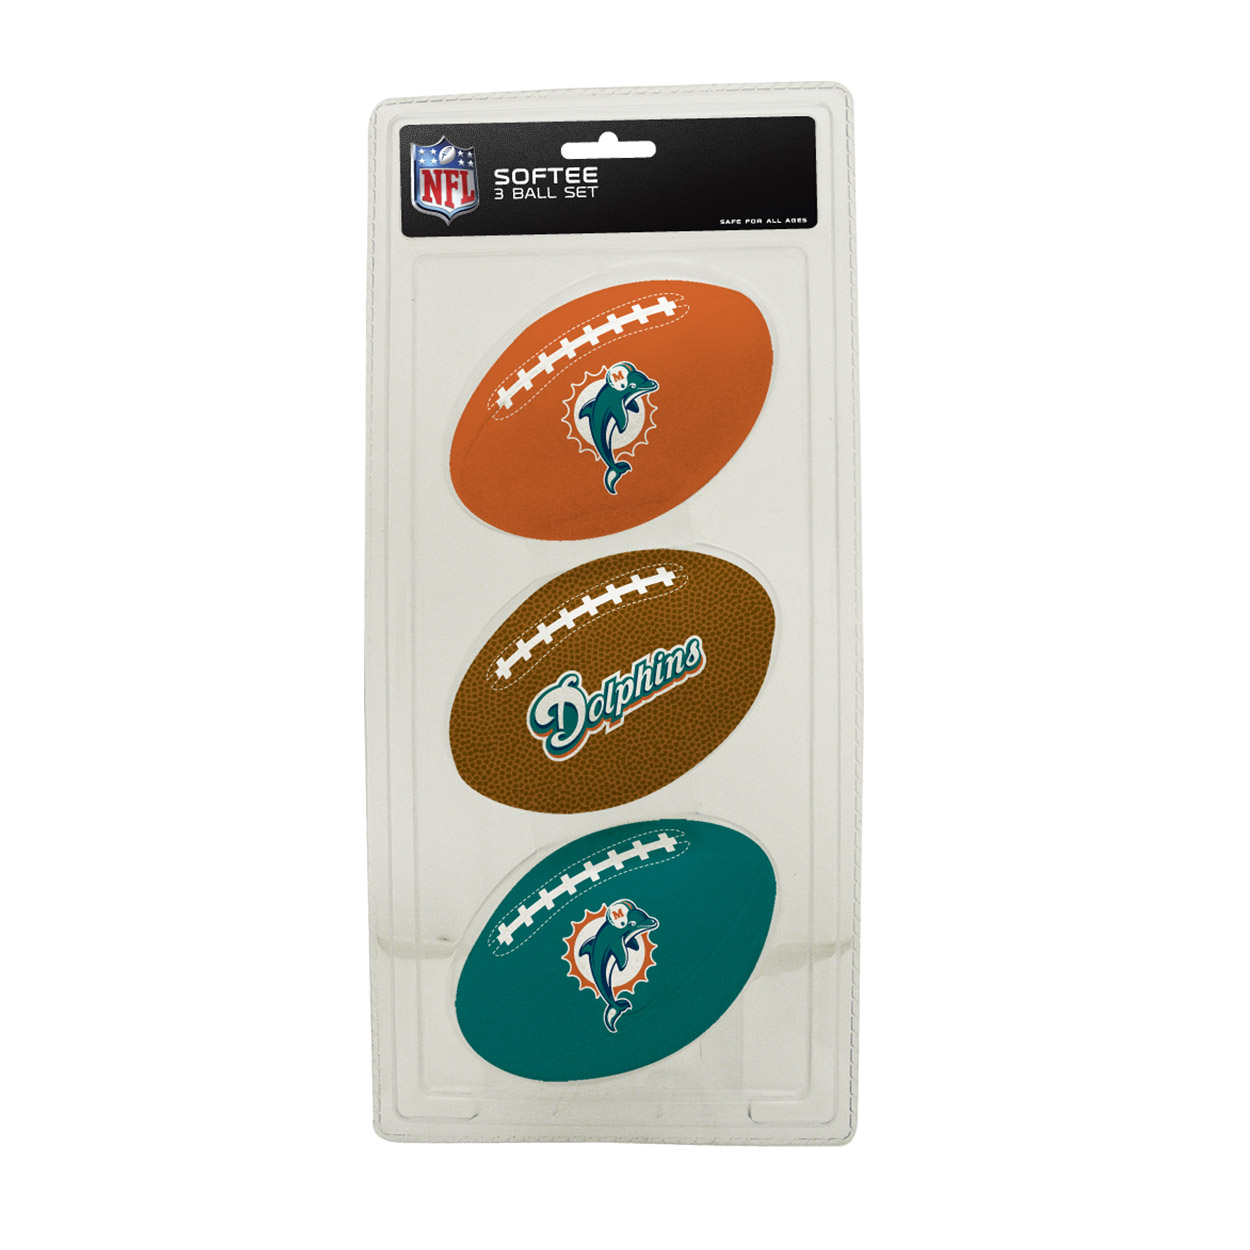 3-Football Softee Set Miami Dolphins